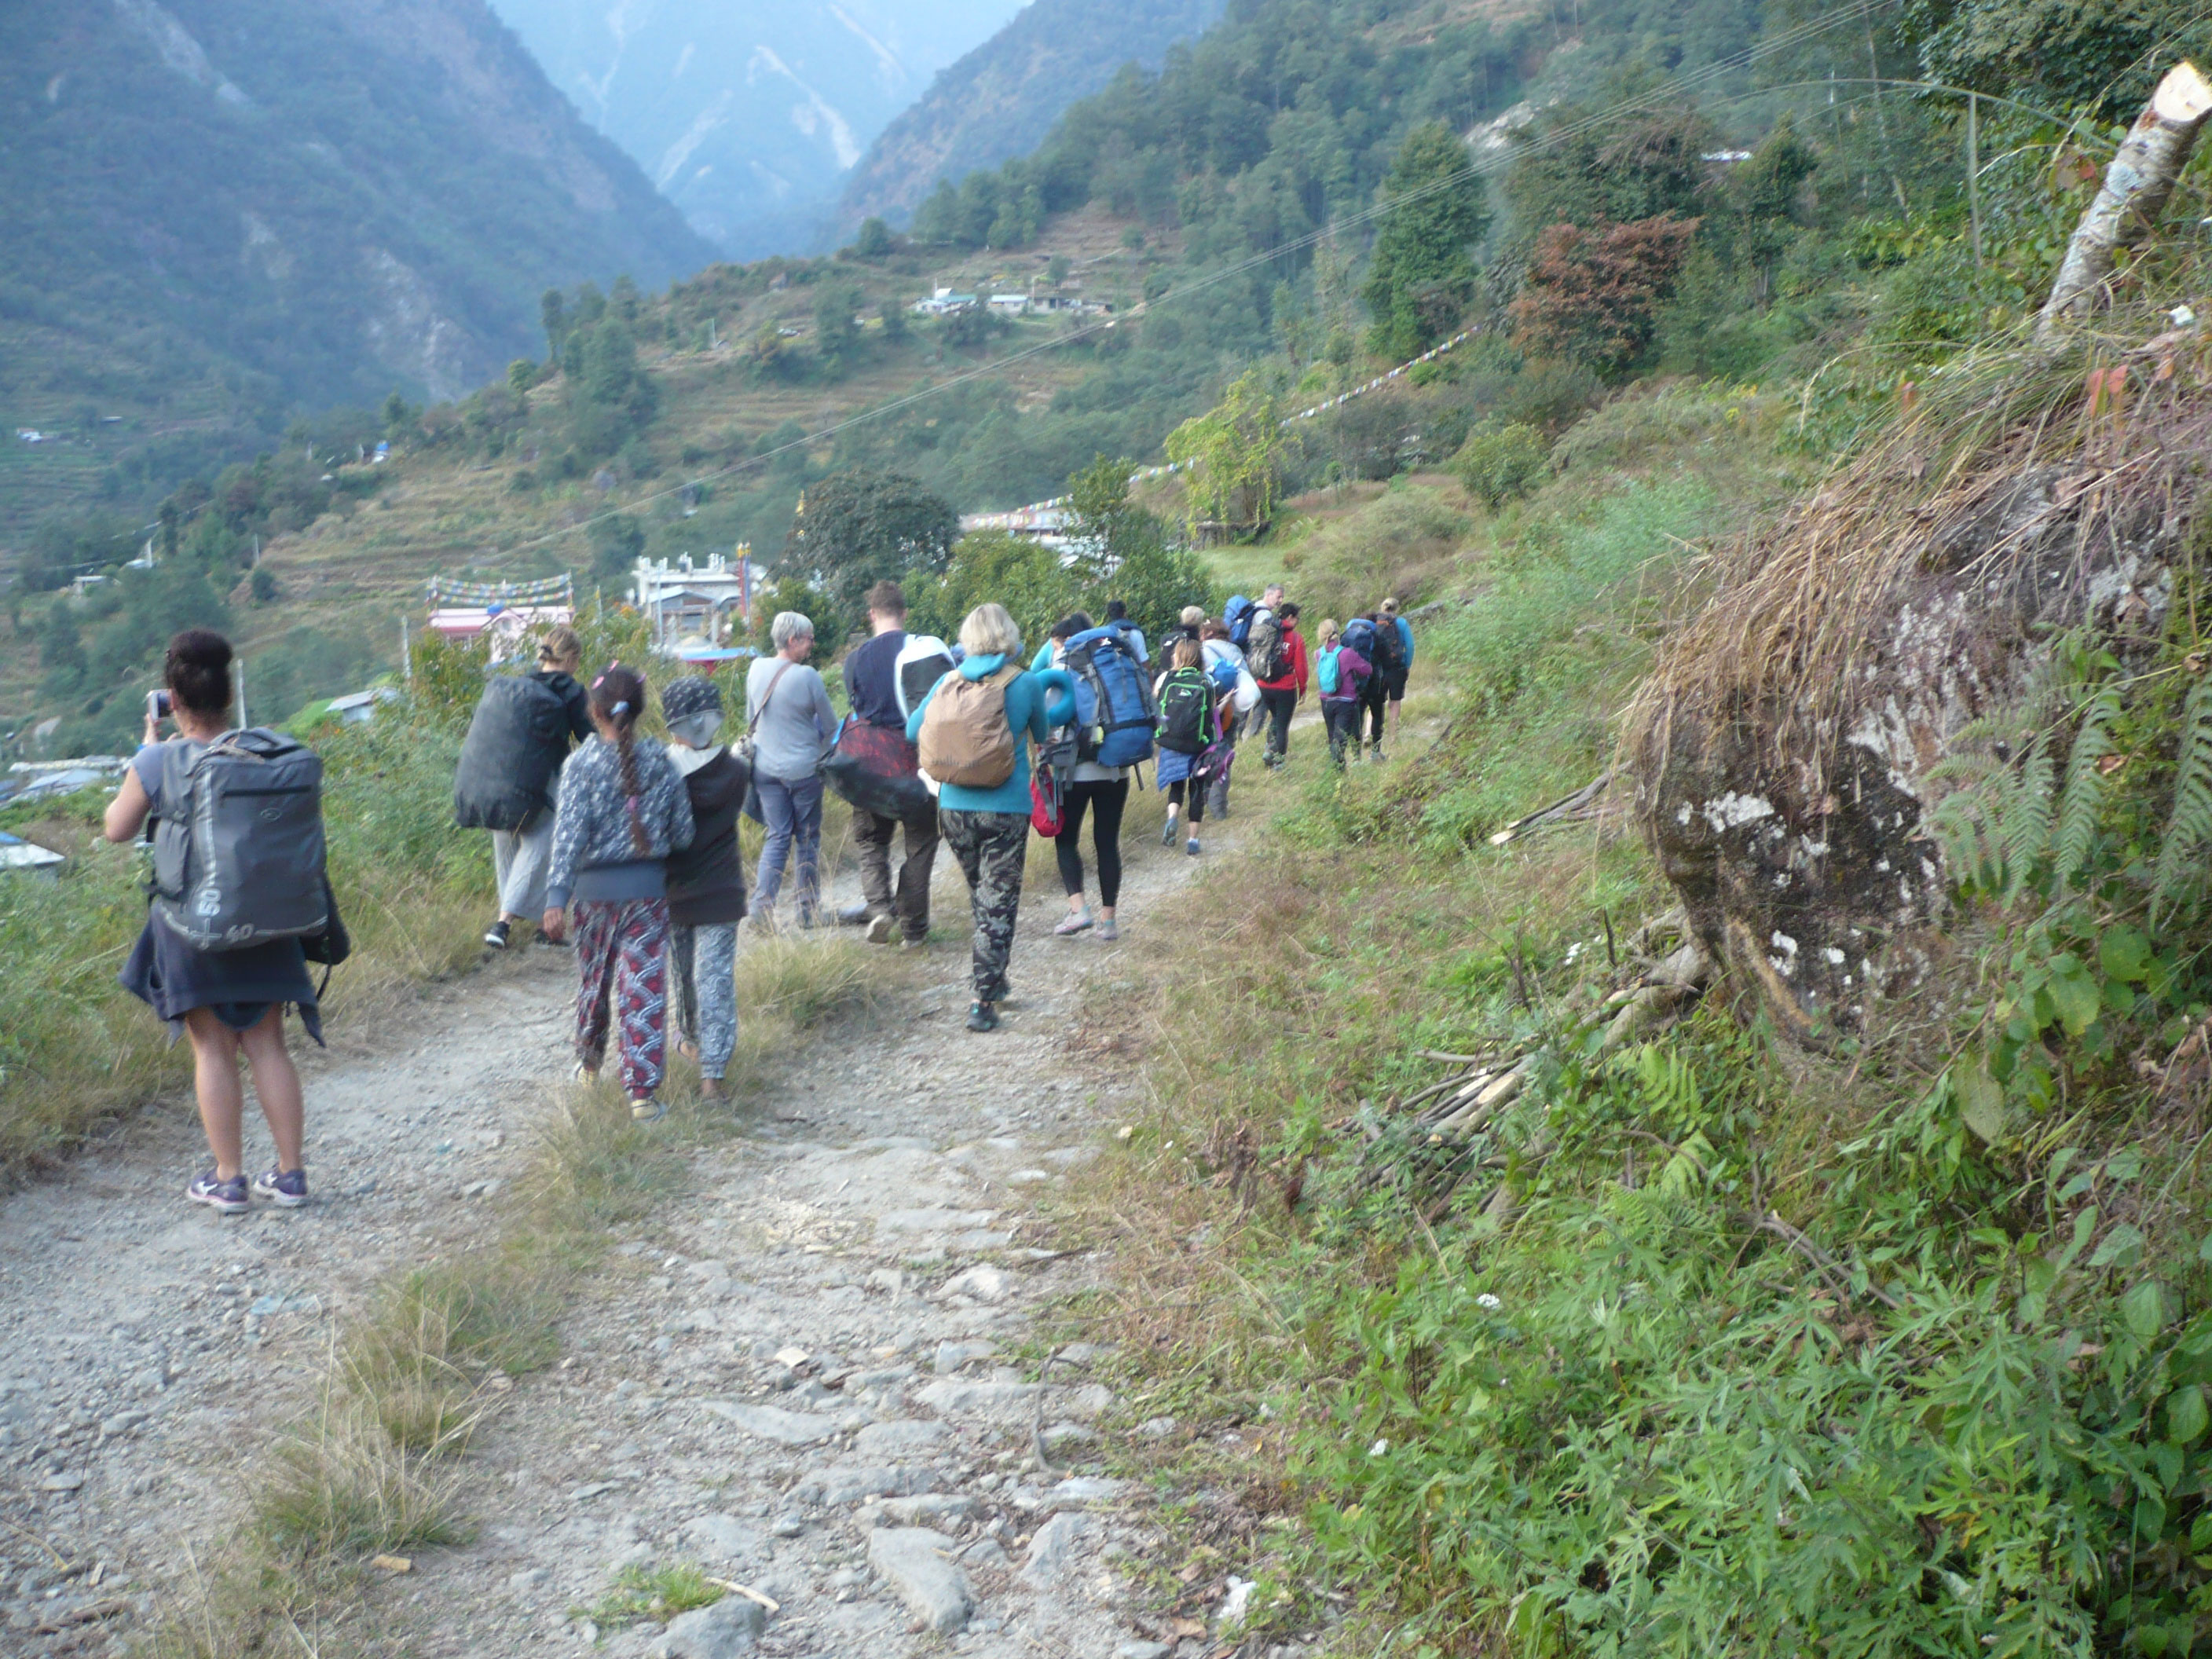 https://fulloncouriers.co.uk/wp-content/uploads/2019/05/nepal1.jpg